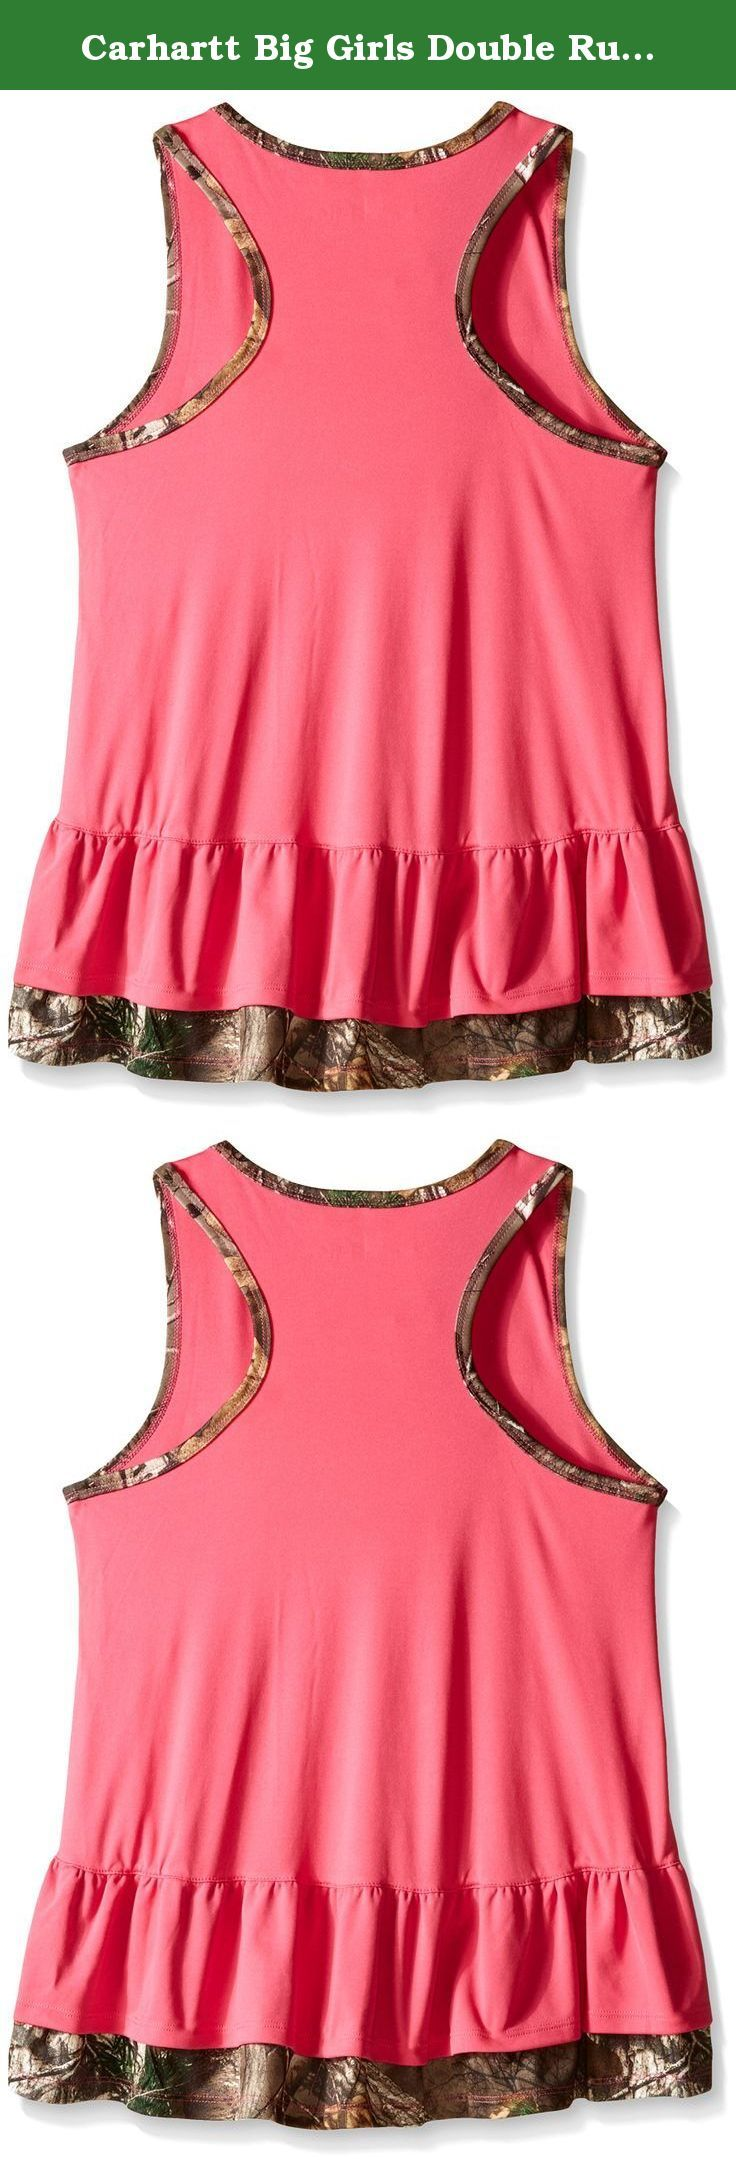 Carhartt Big Girls Double Ruffle Tank, Fandango Pink, 10. Tank with double ruffle hem and contrast realtree xtra binding at neck and armholes.